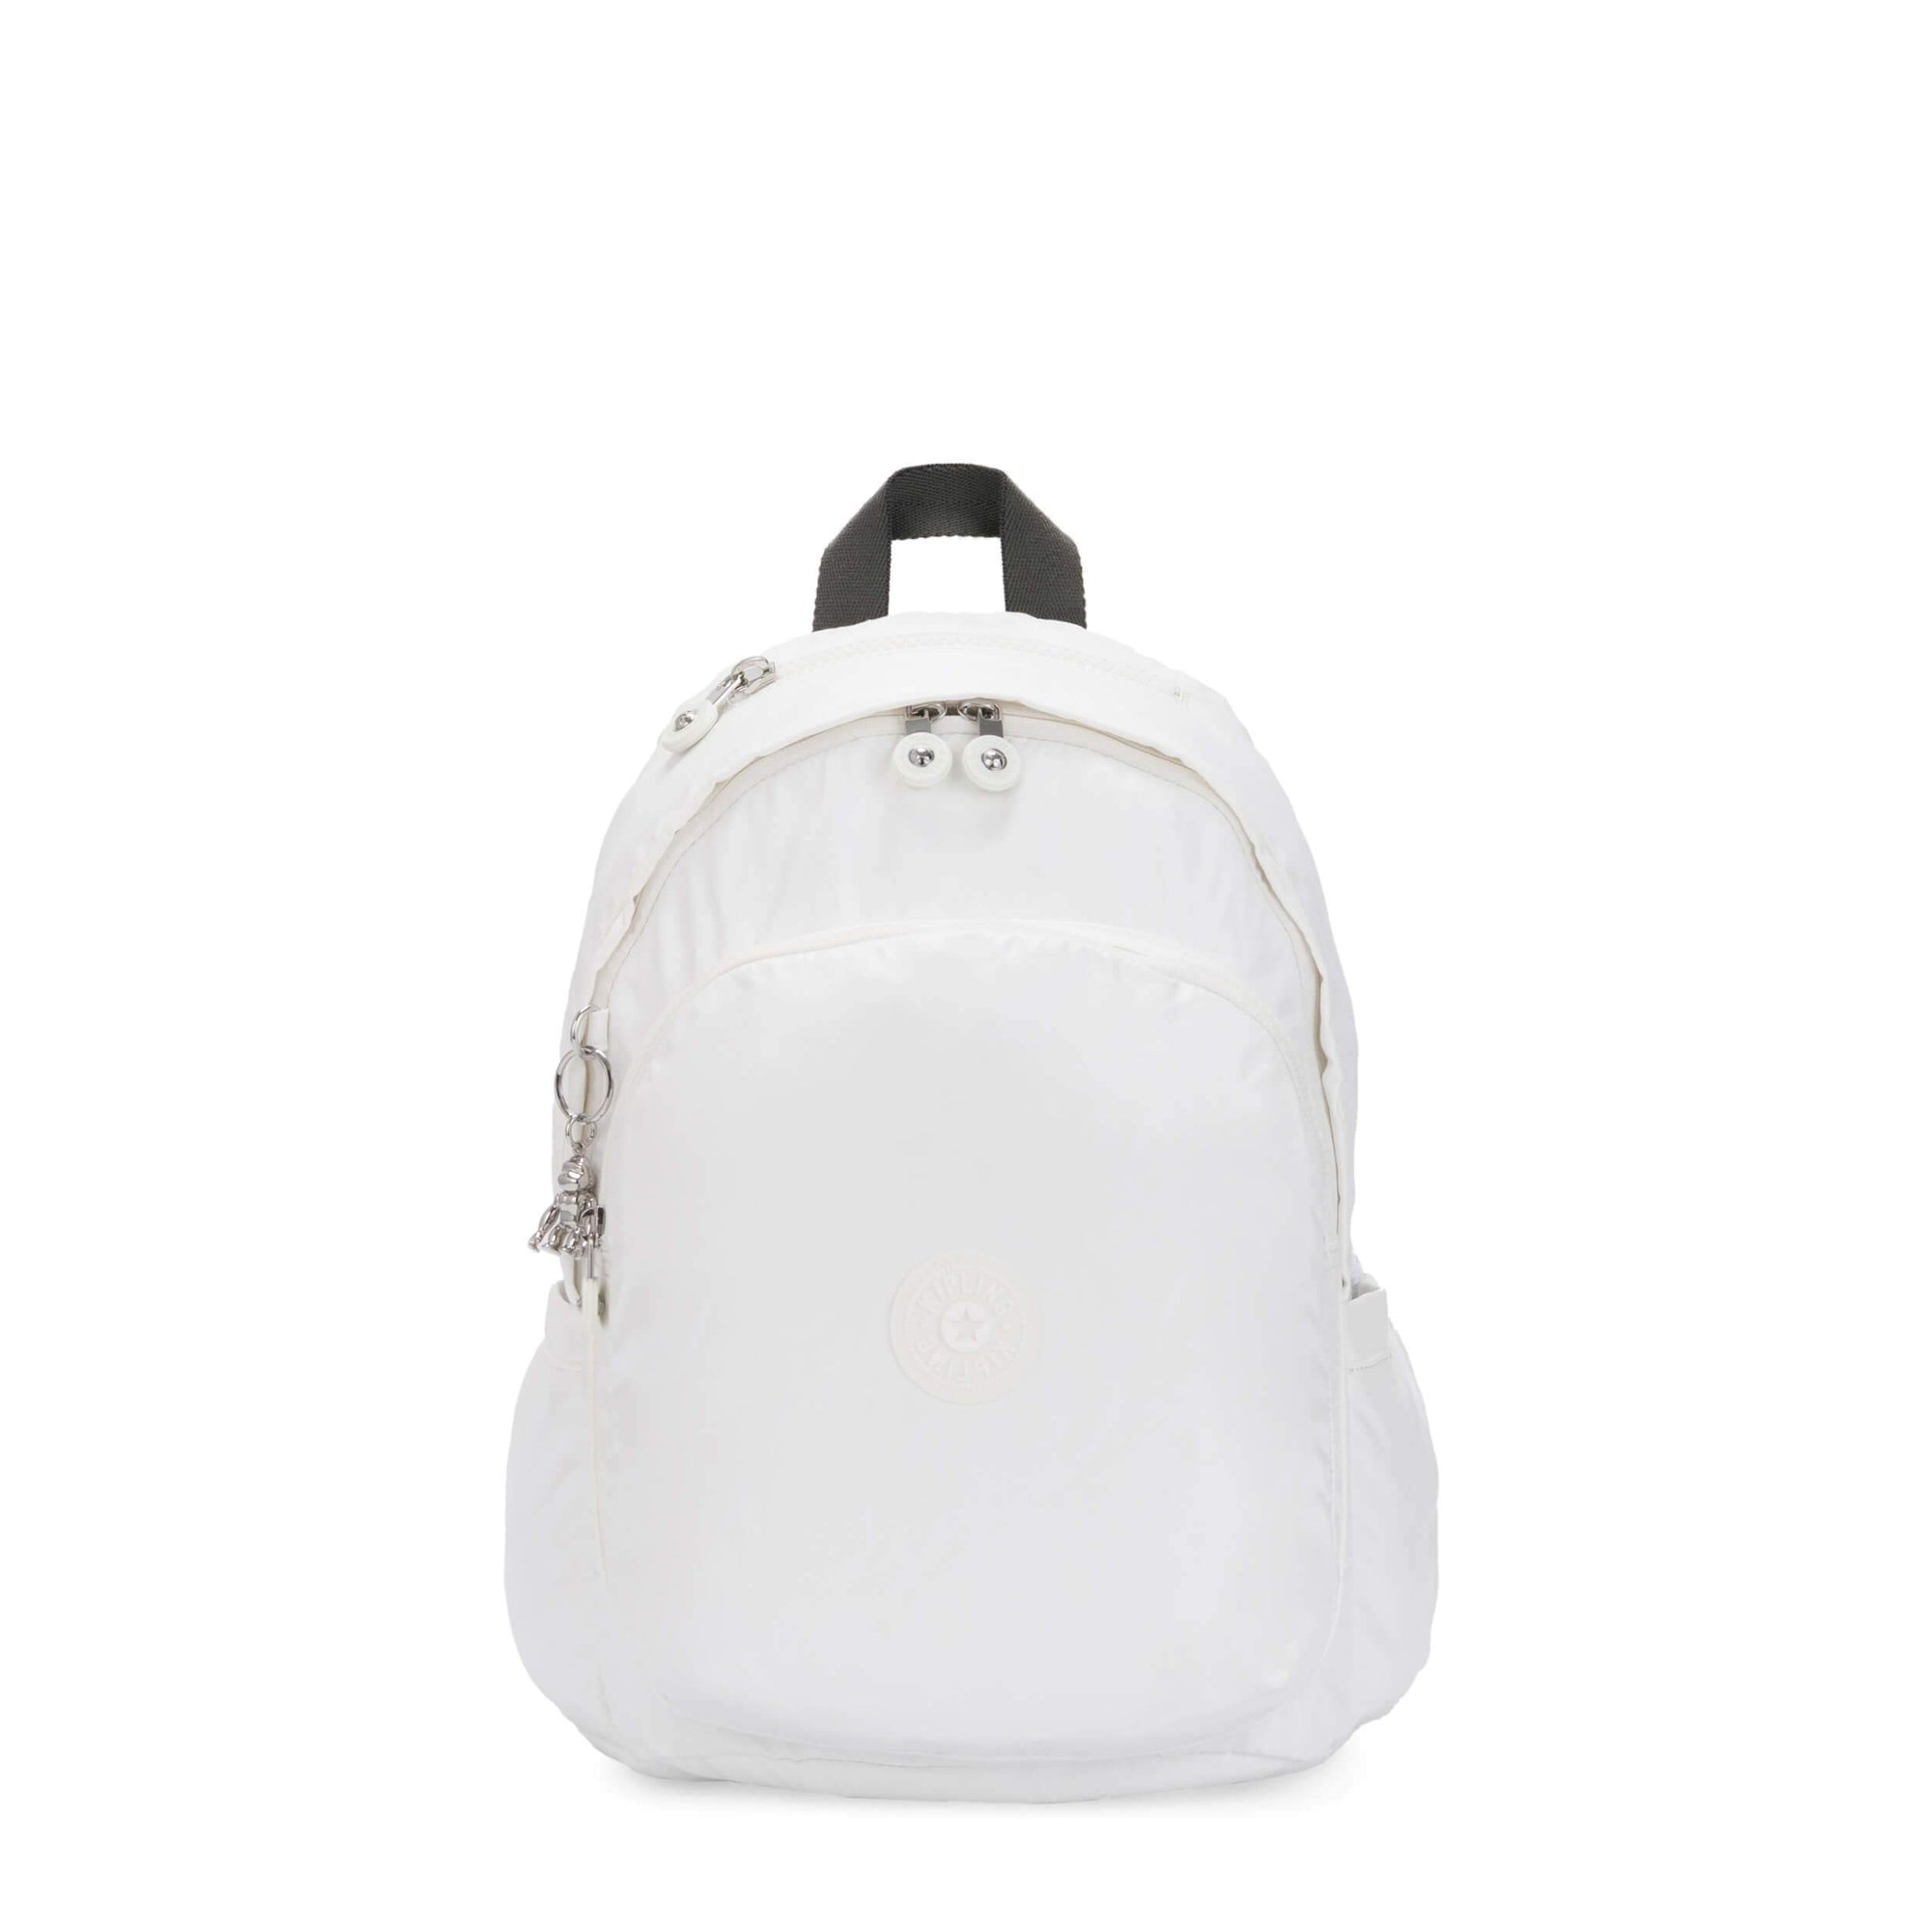 Backpack Kipling Delia White Metallic KI569547I